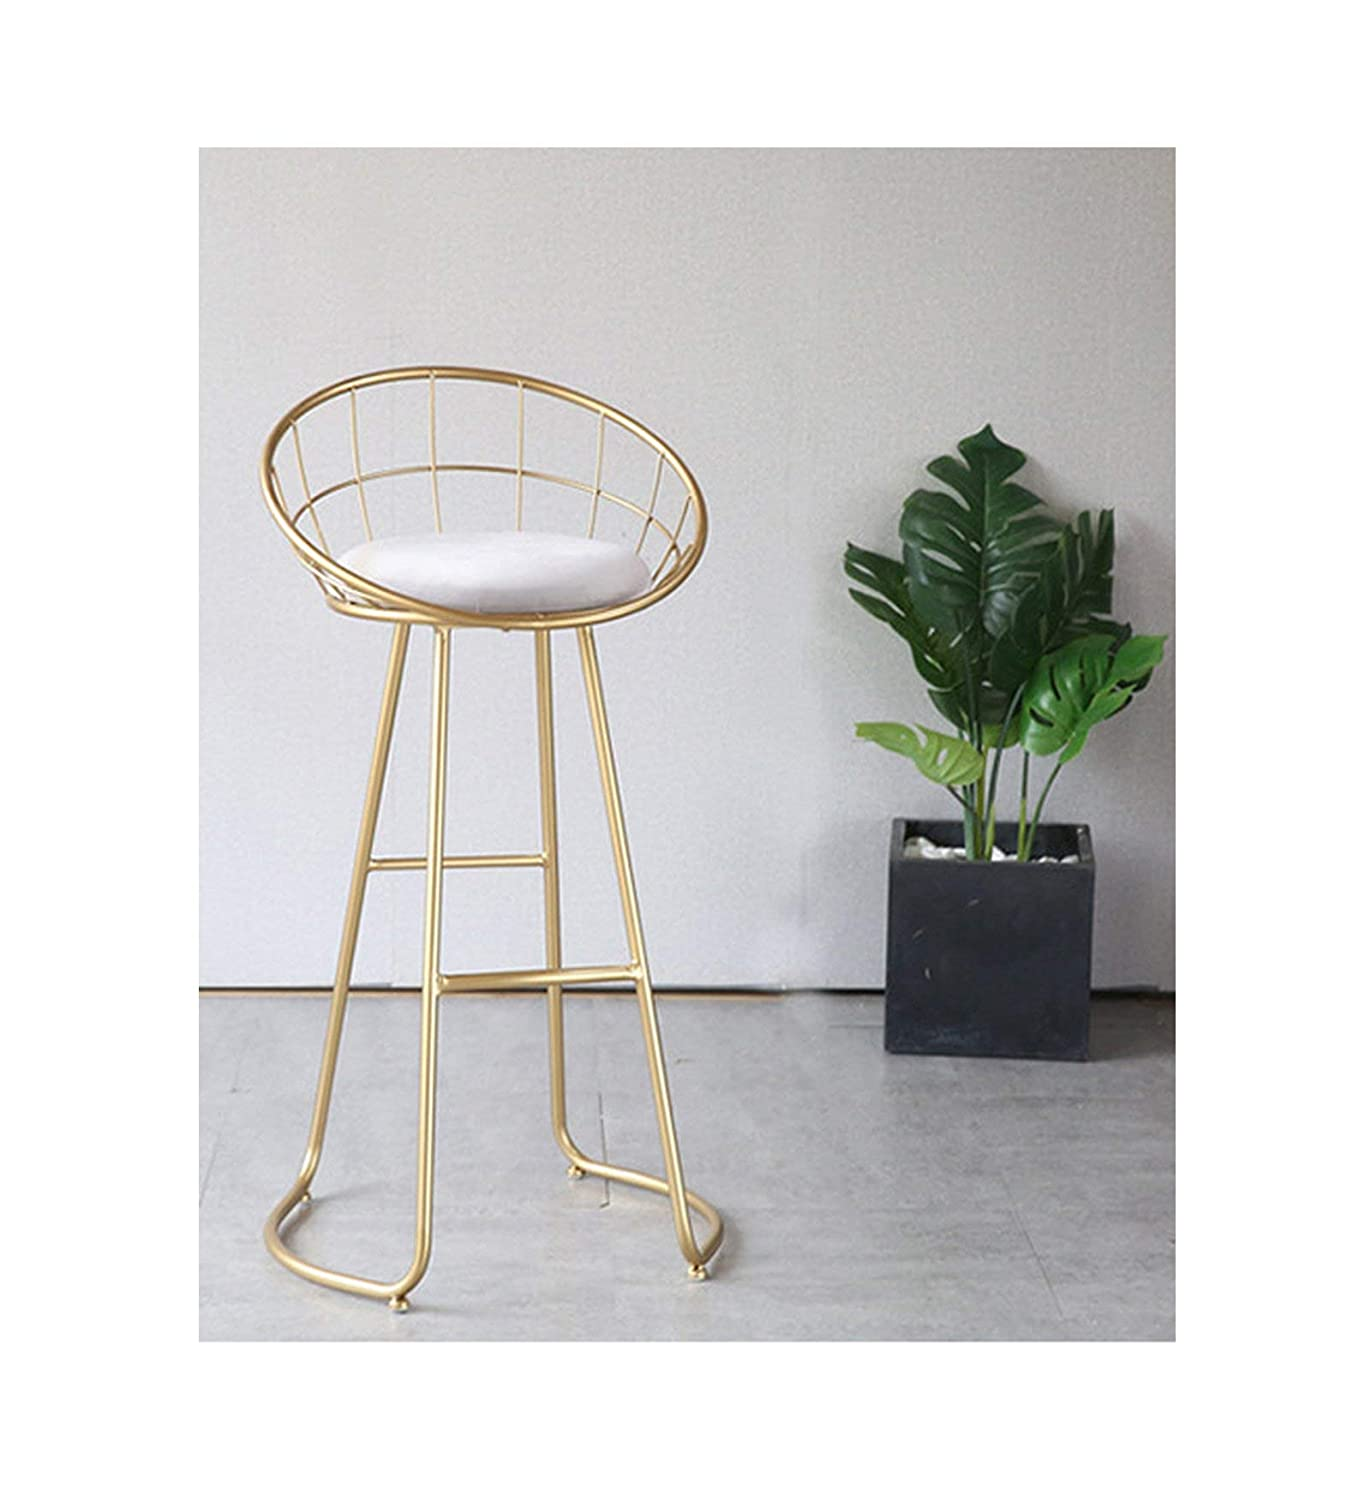 gold height 75CM Metal Creative Nordic Bar Stool Bar Chair Fashion Counter Stool High Stool Simple Dining Chair,gold Height 65CM